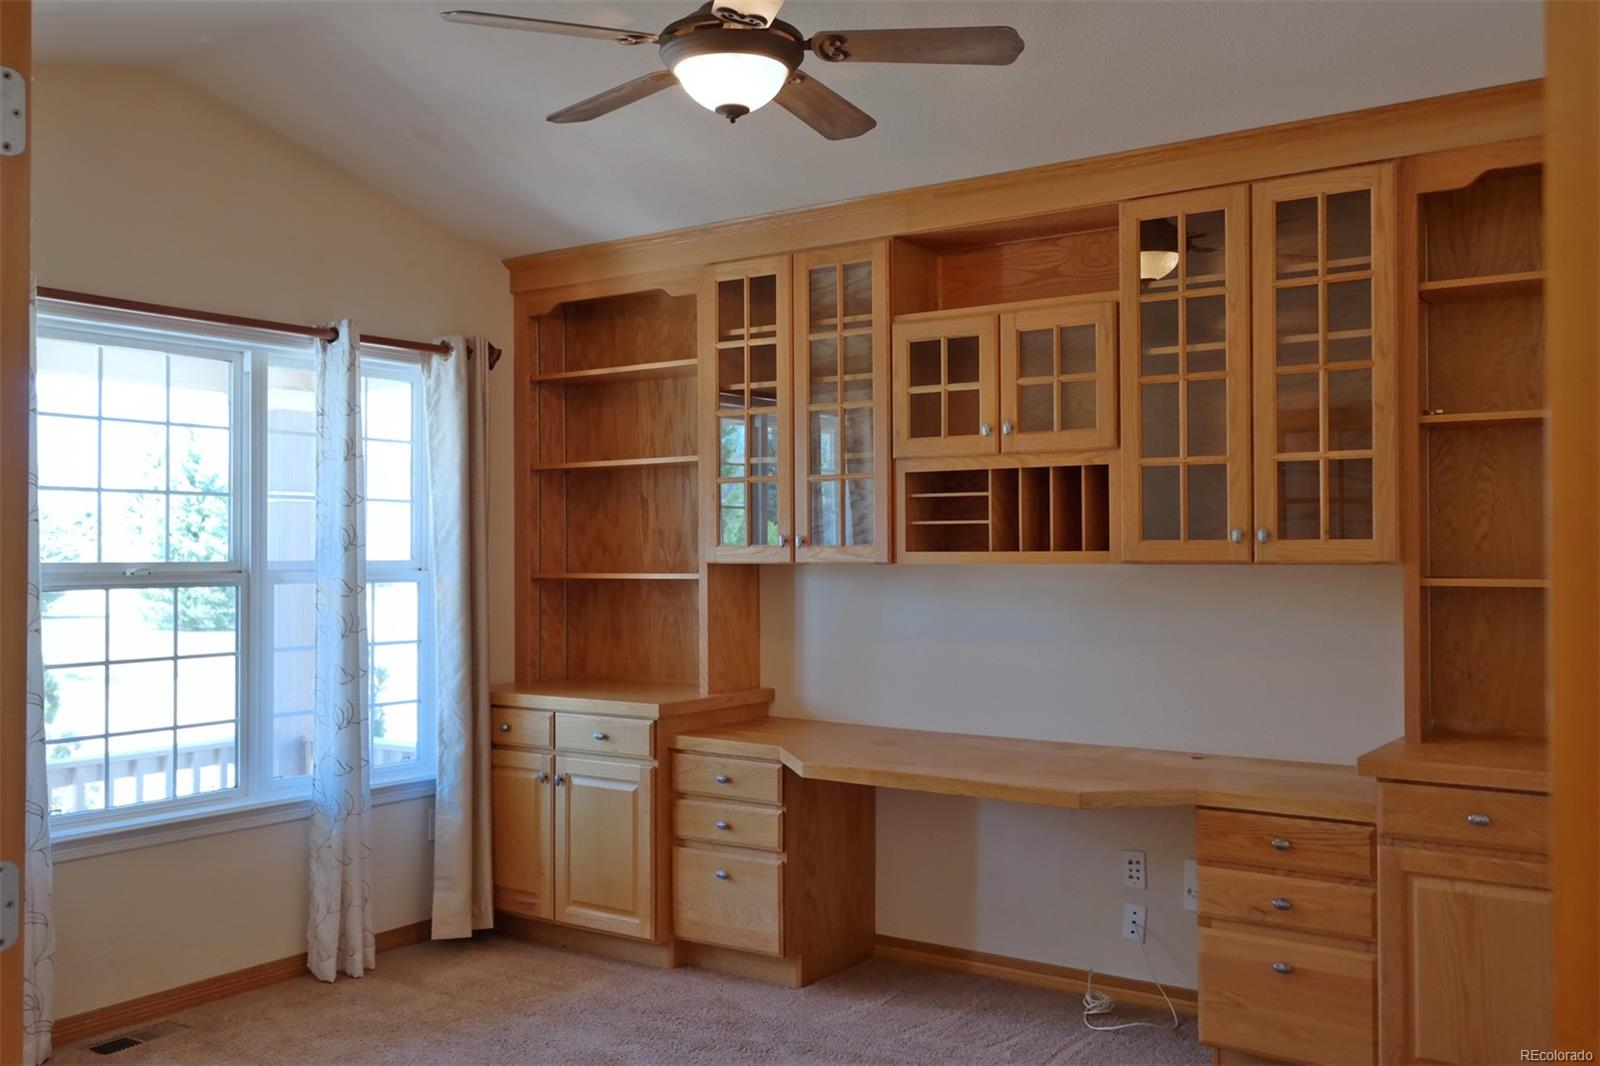 Attractive & Functional Built-Ins in Study